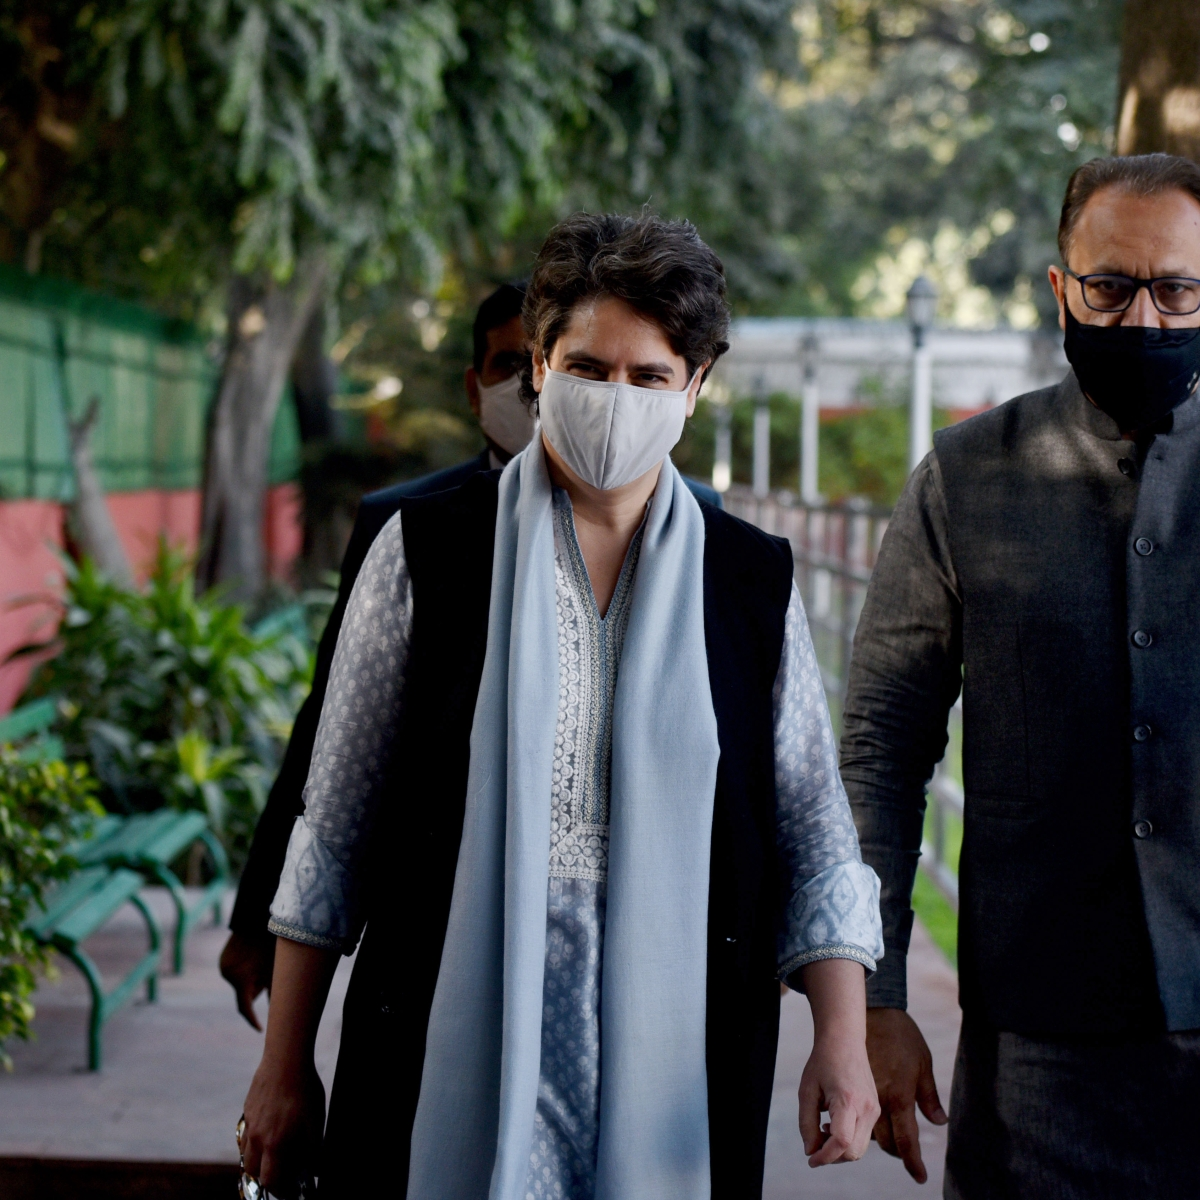 With Rahul Gandhi away, Priyanka emerges as crisis manager in Congress with her infectious positivity